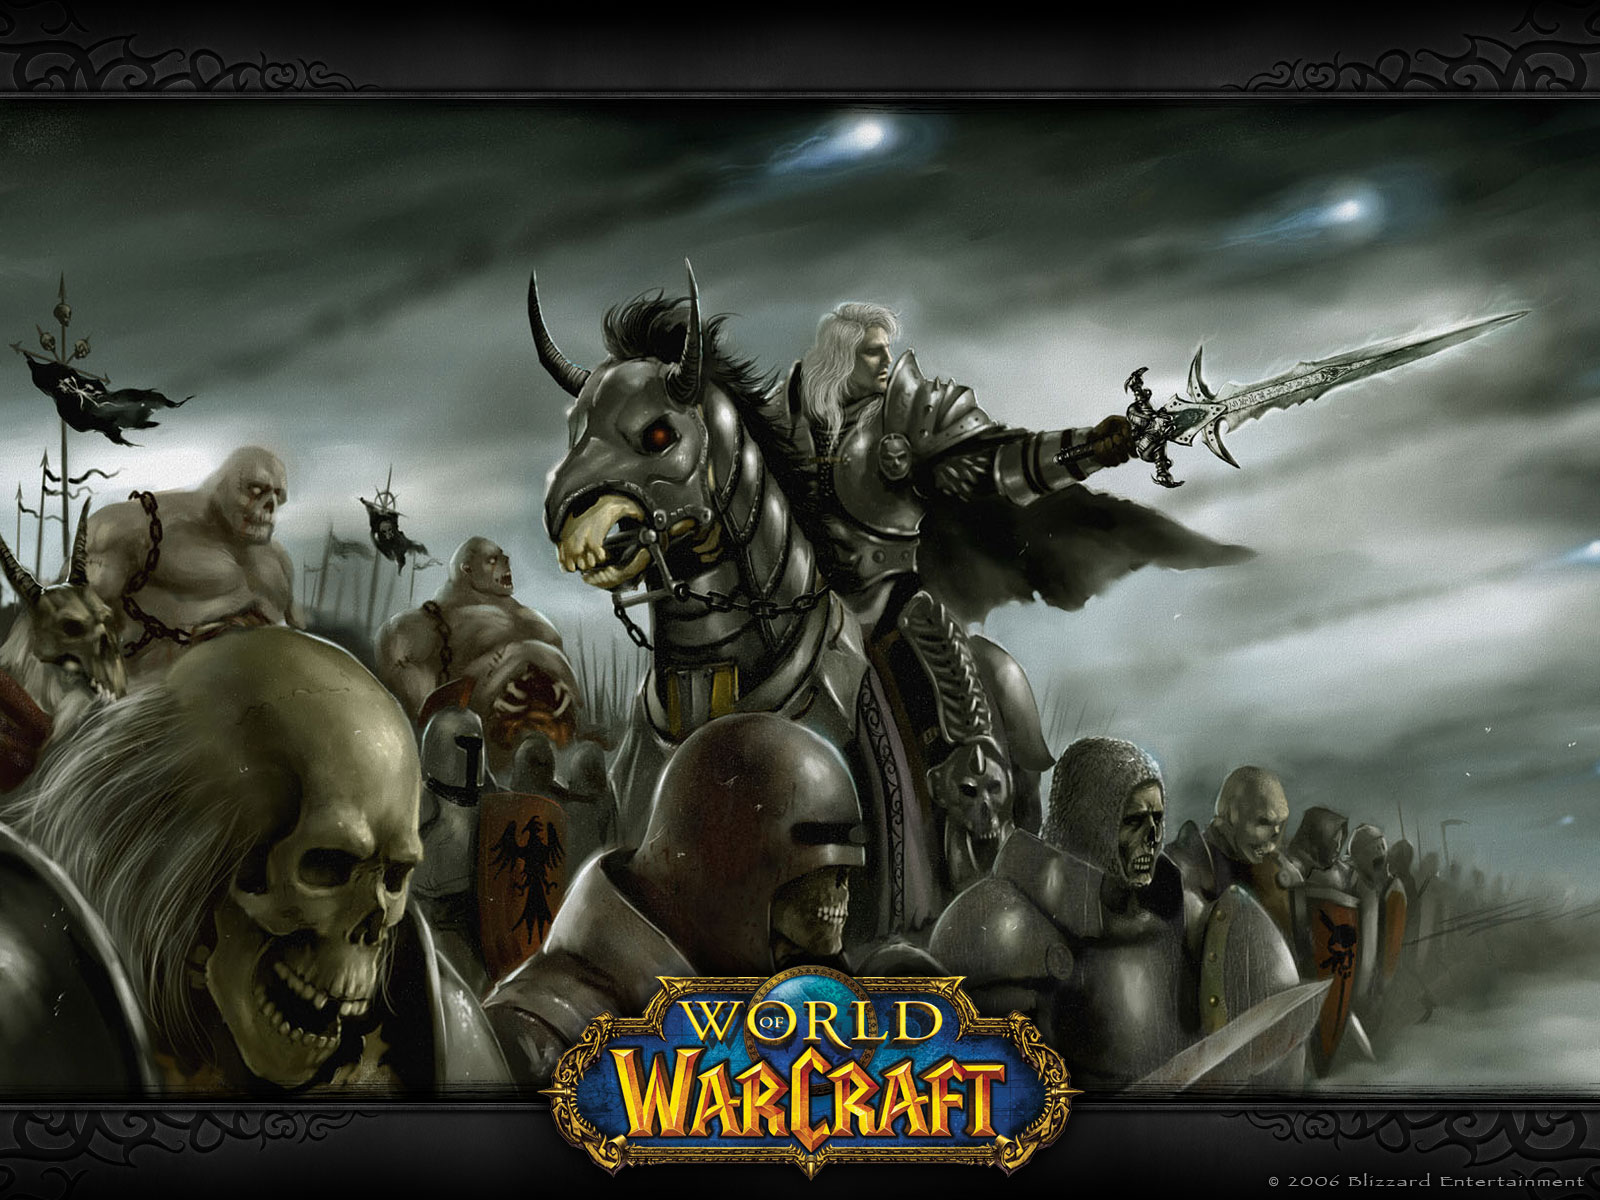 http://2.bp.blogspot.com/-JwphGY-resk/UB7pXDtgbpI/AAAAAAAAAD8/VgRQCAjH2e4/s1600/best-top-desktop-wallpaper-world-of-warcraft-wallpapers-hd-8.jpg